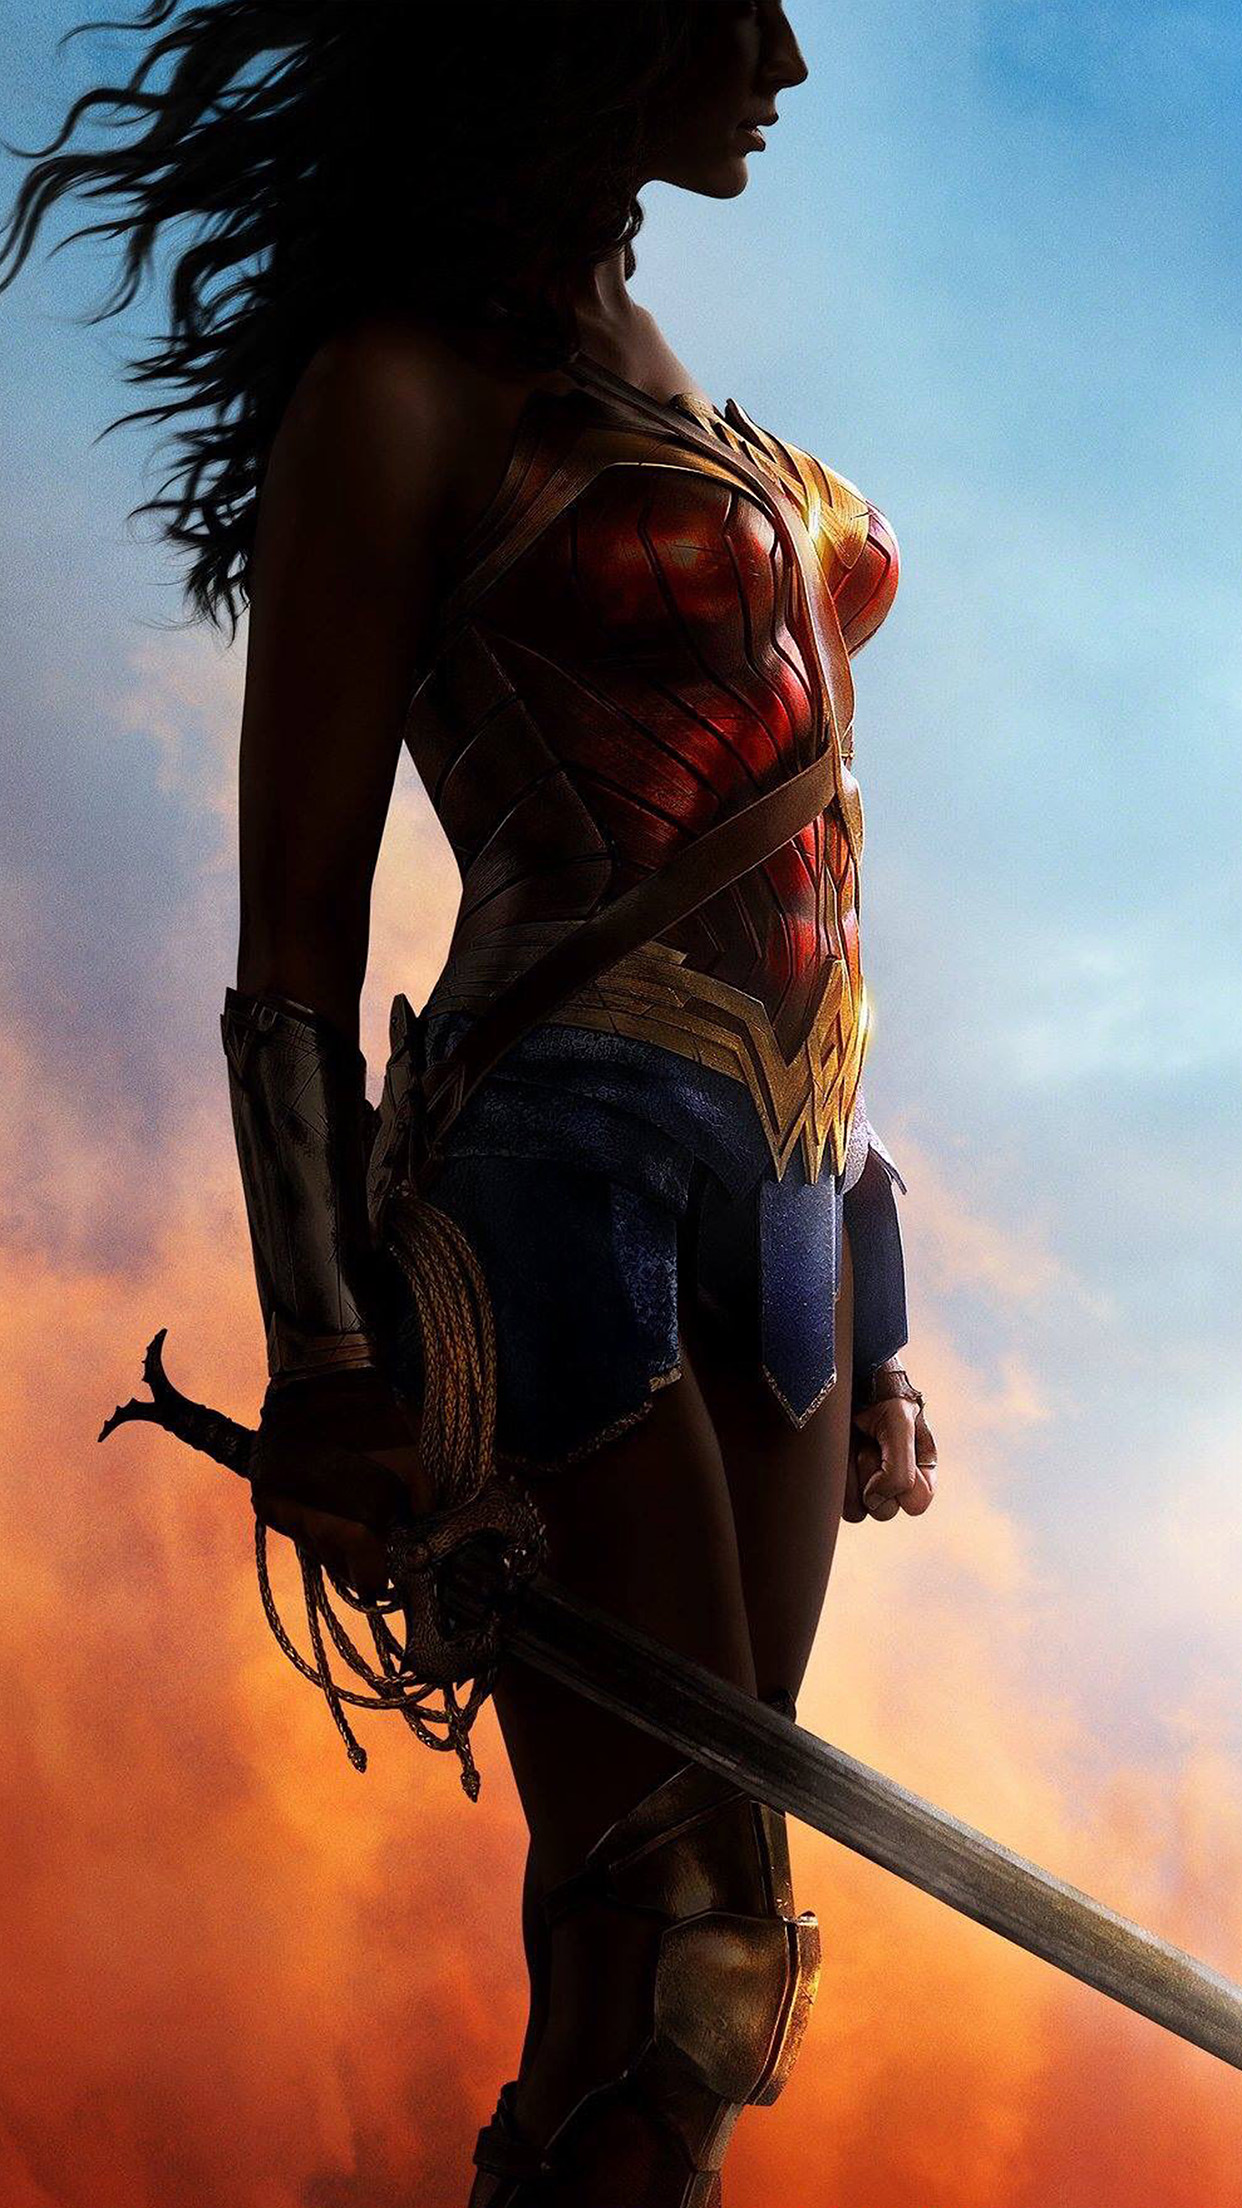 Iphone wallpaper as56 wonder woman art - Classic art wallpaper iphone 5 ...